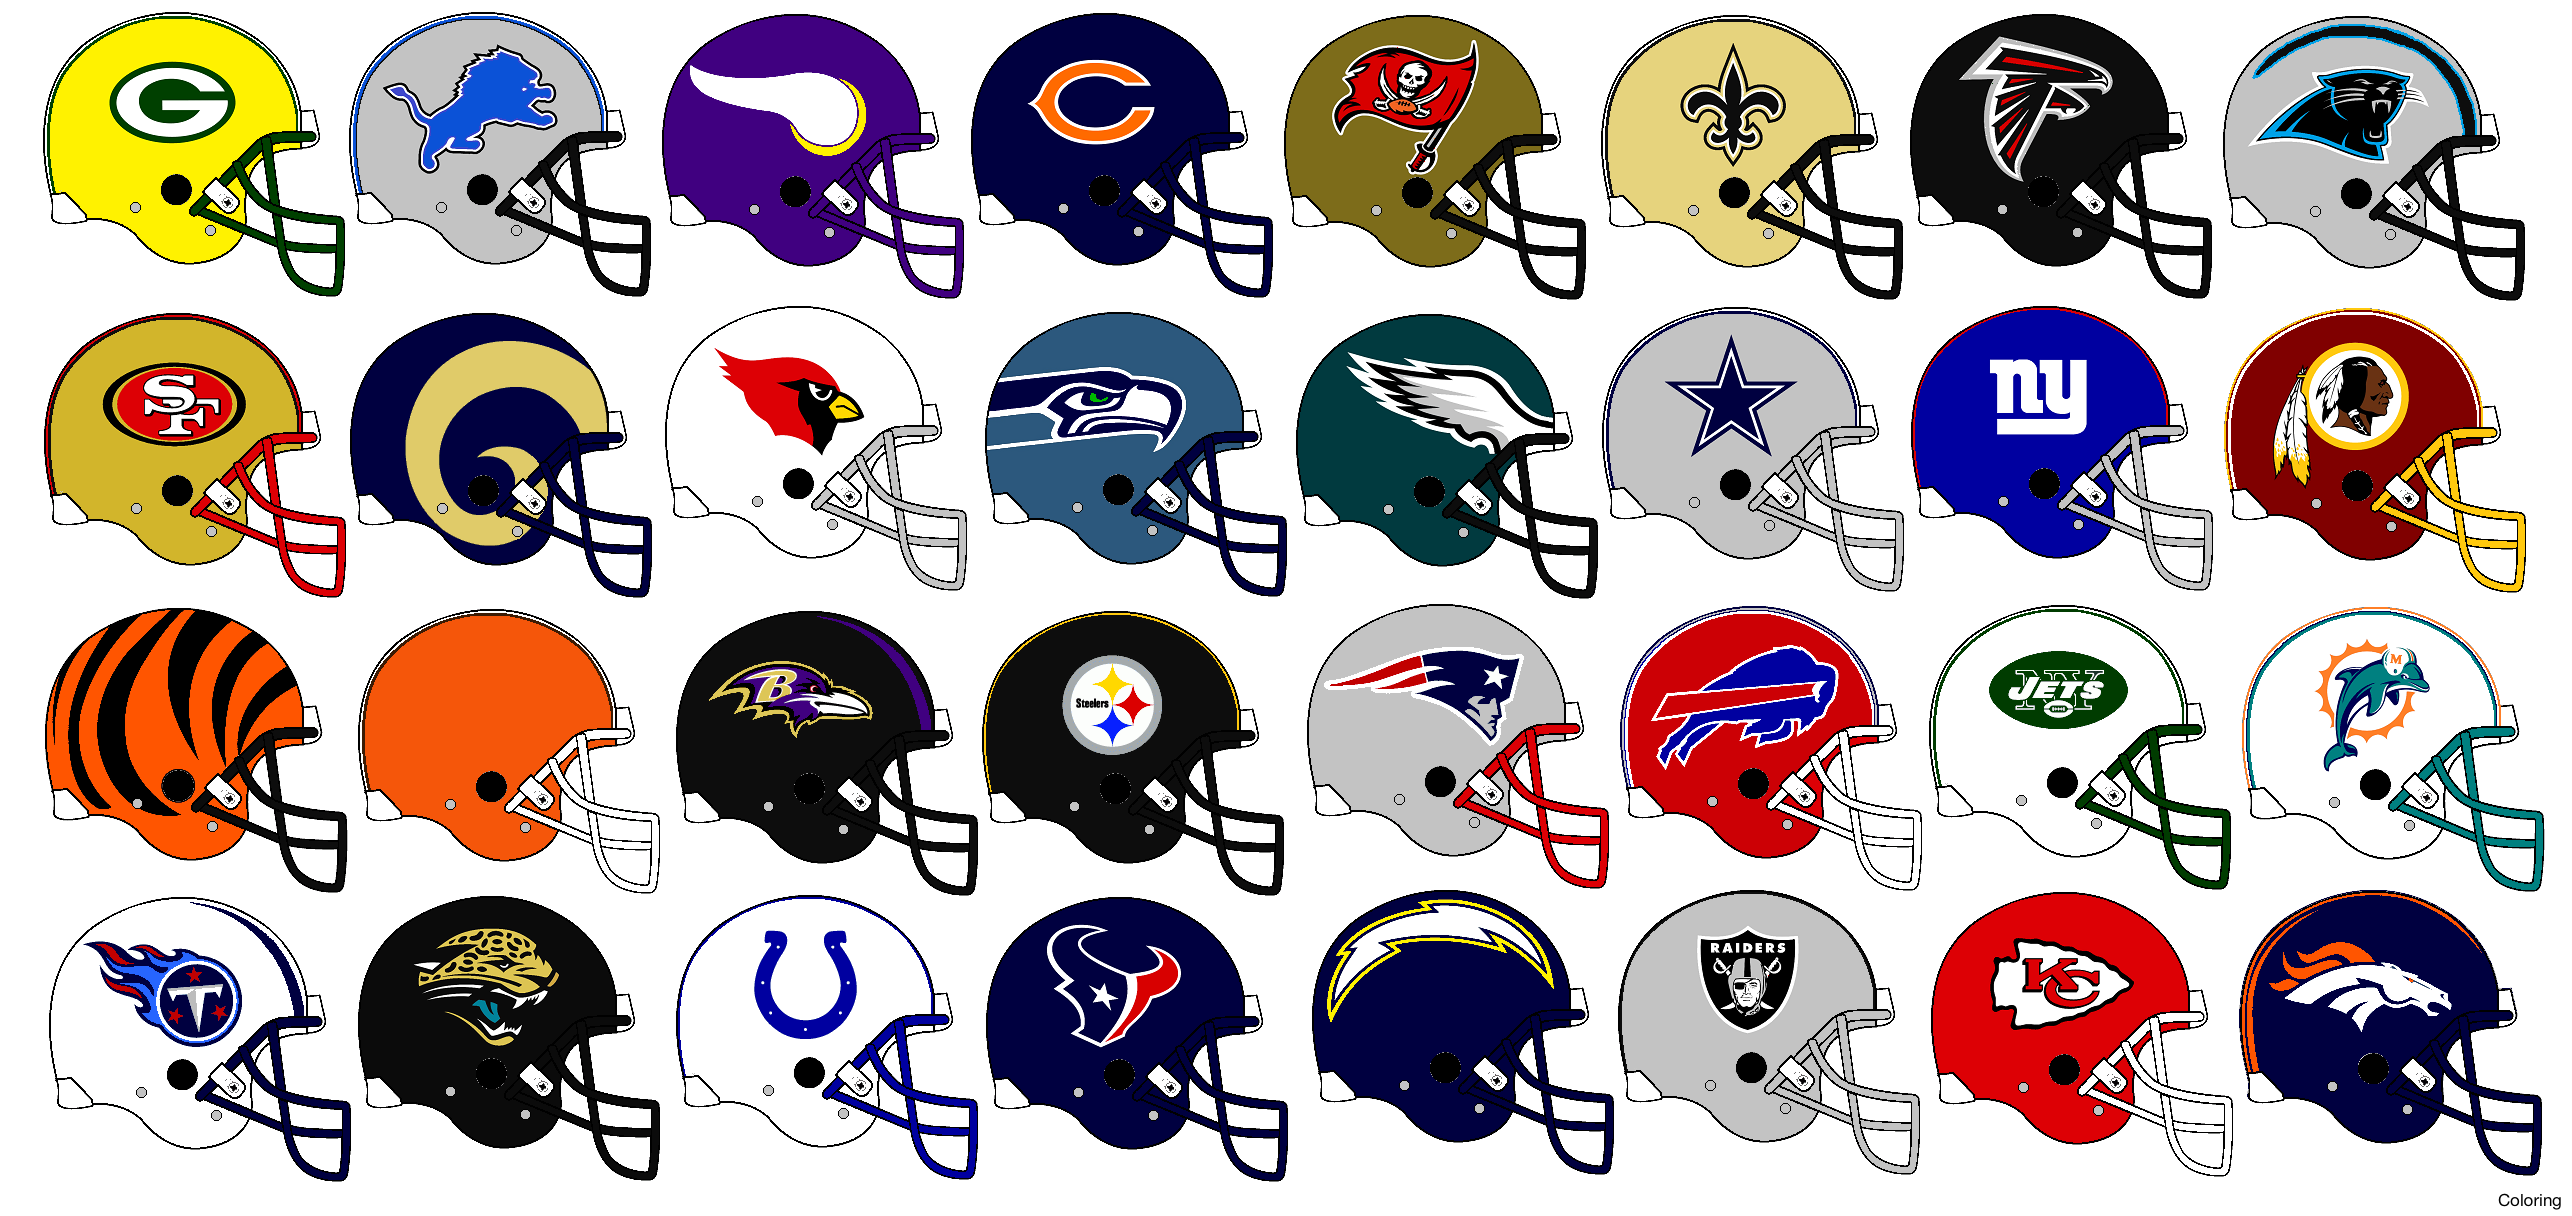 Nfl Helmet Logos Coloring Pages 2420758 Png Images Pngio